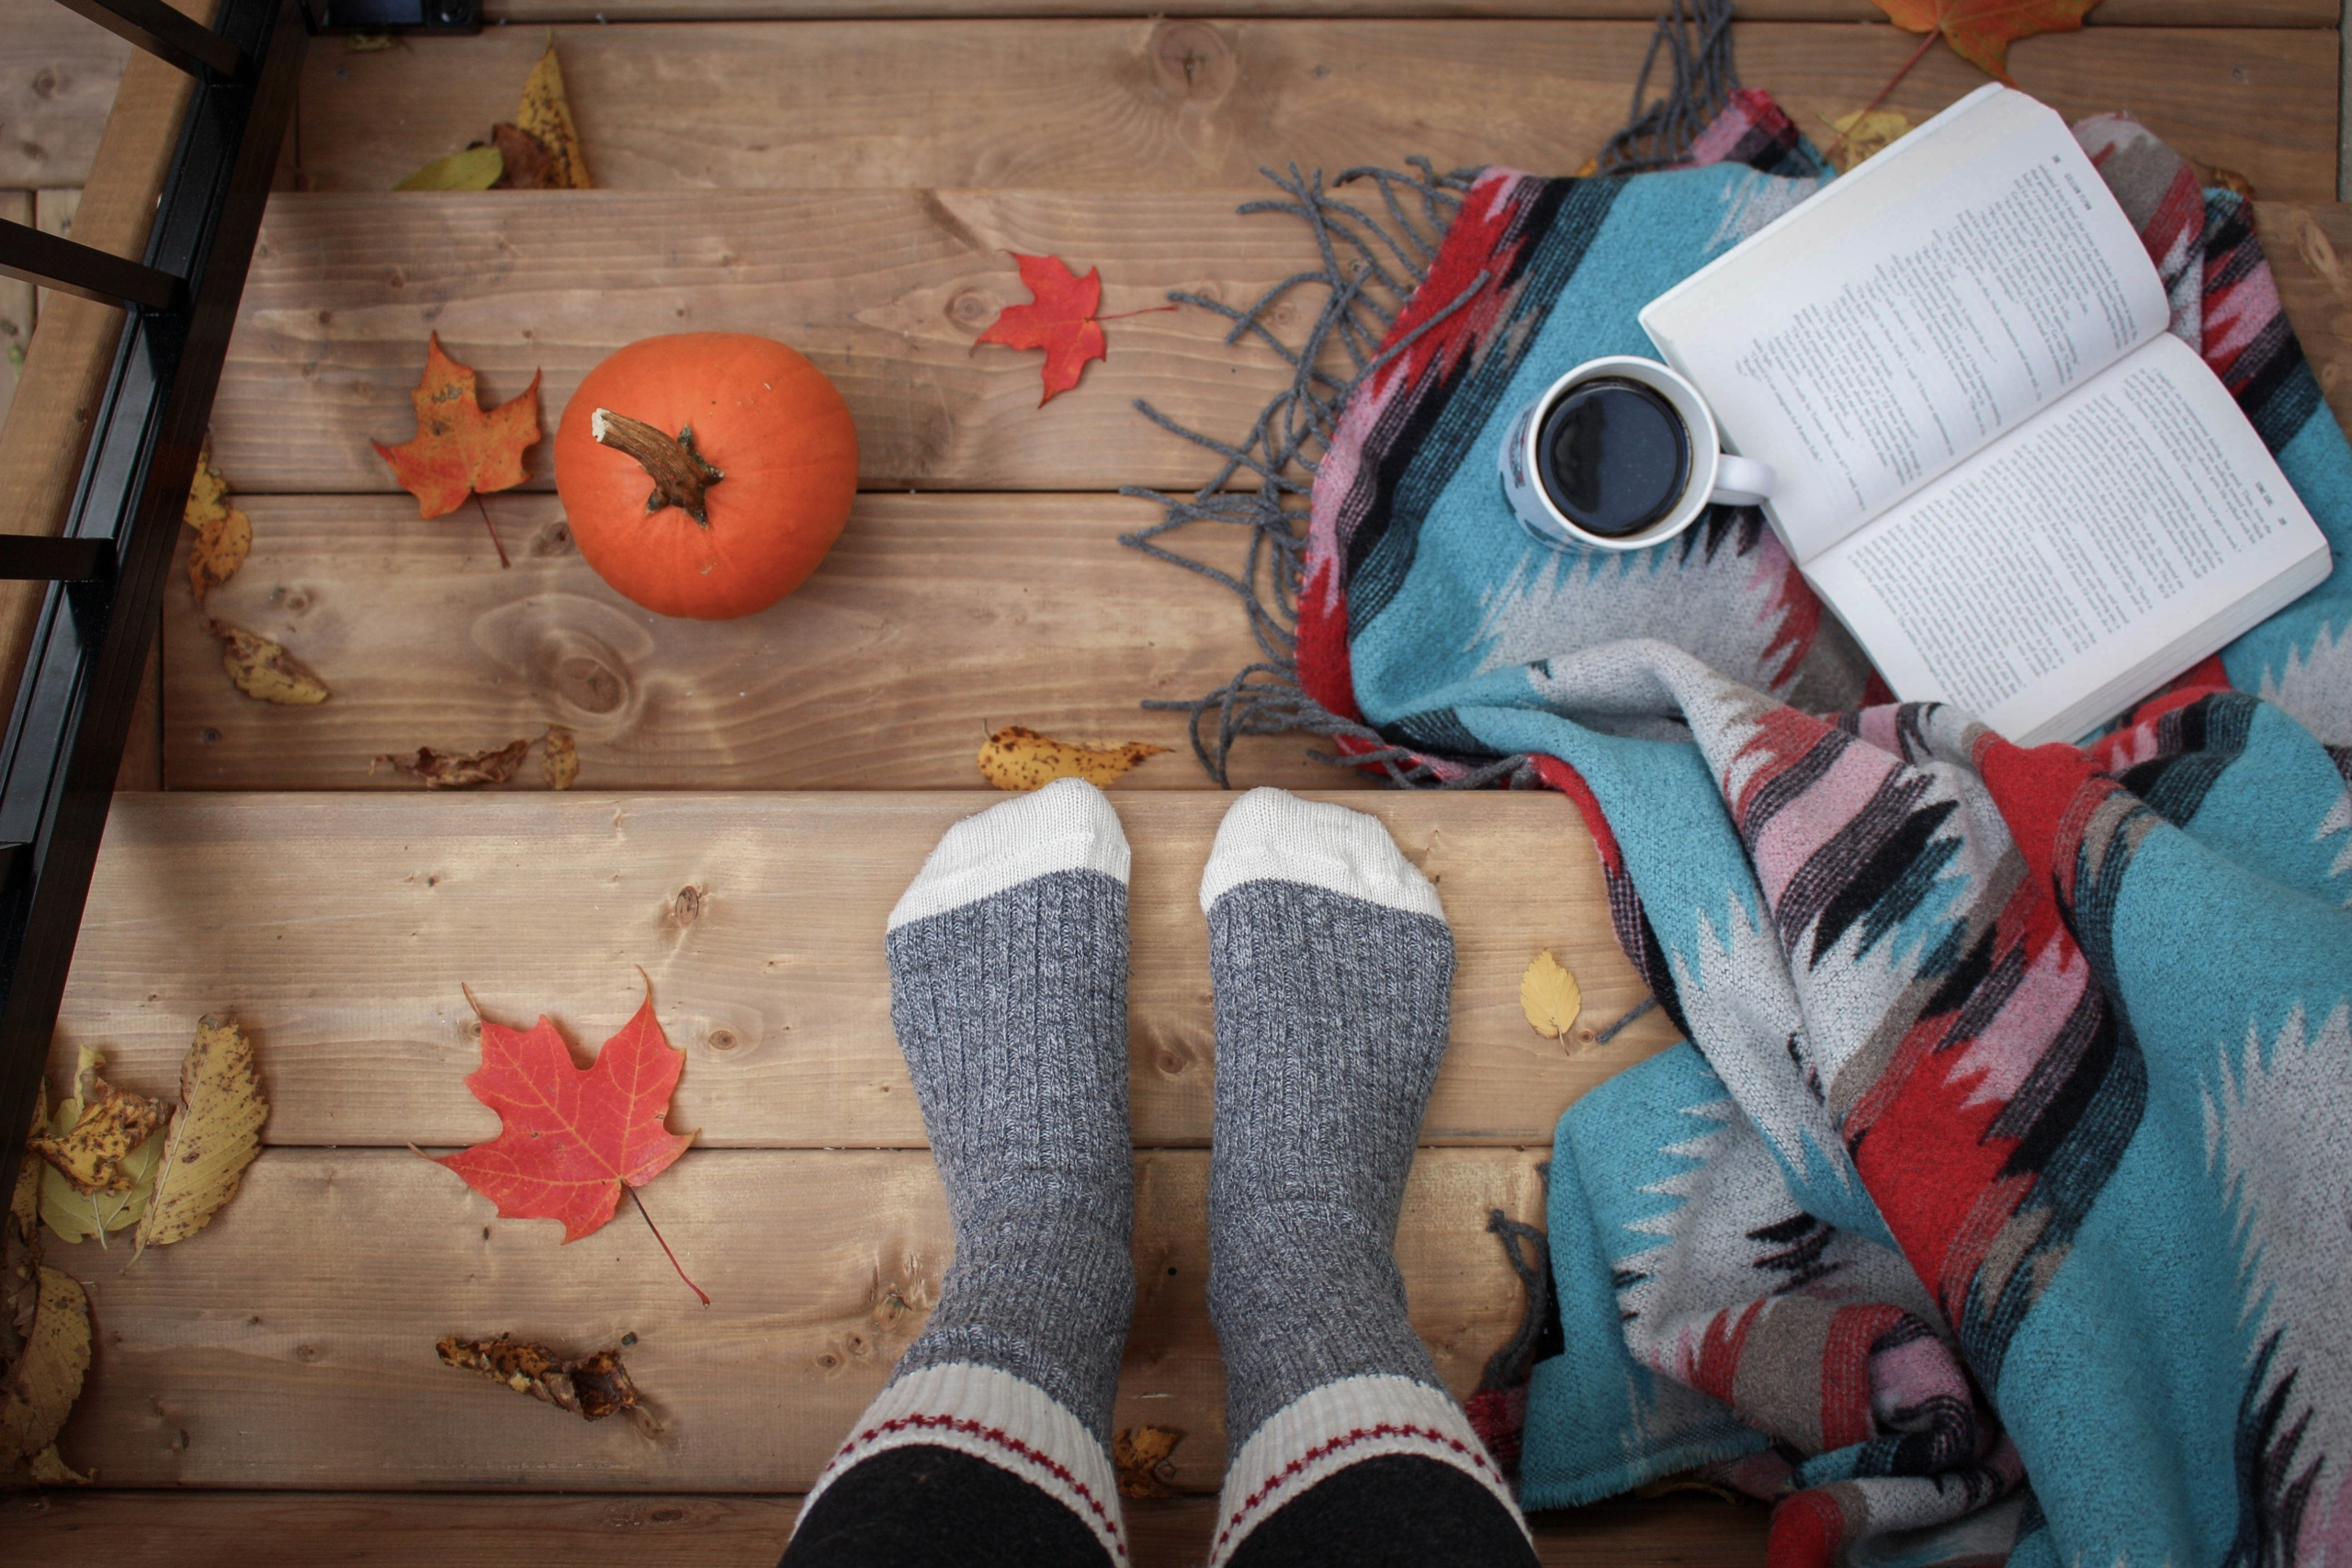 5 Things To Do For Your Career This Fall